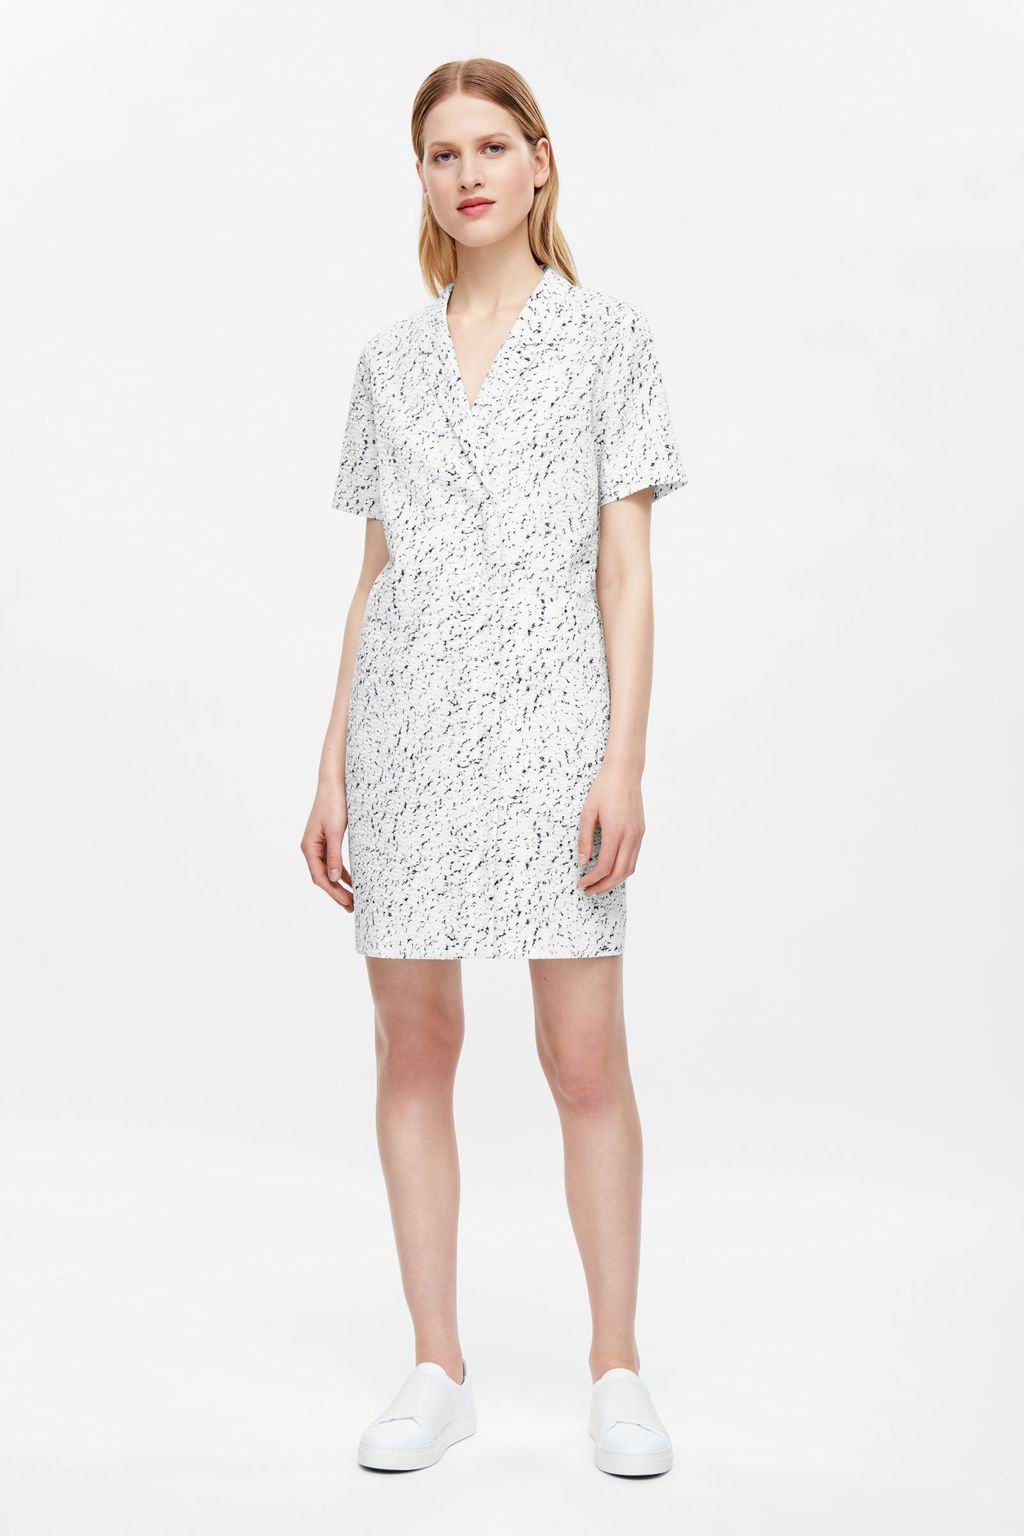 Short Sleeve Wrap Dress - style: faux wrap/wrap; neckline: v-neck; predominant colour: white; secondary colour: light grey; occasions: casual; length: just above the knee; fit: body skimming; fibres: cotton - 100%; sleeve length: short sleeve; sleeve style: standard; texture group: cotton feel fabrics; pattern type: fabric; pattern: patterned/print; multicoloured: multicoloured; season: s/s 2016; wardrobe: highlight